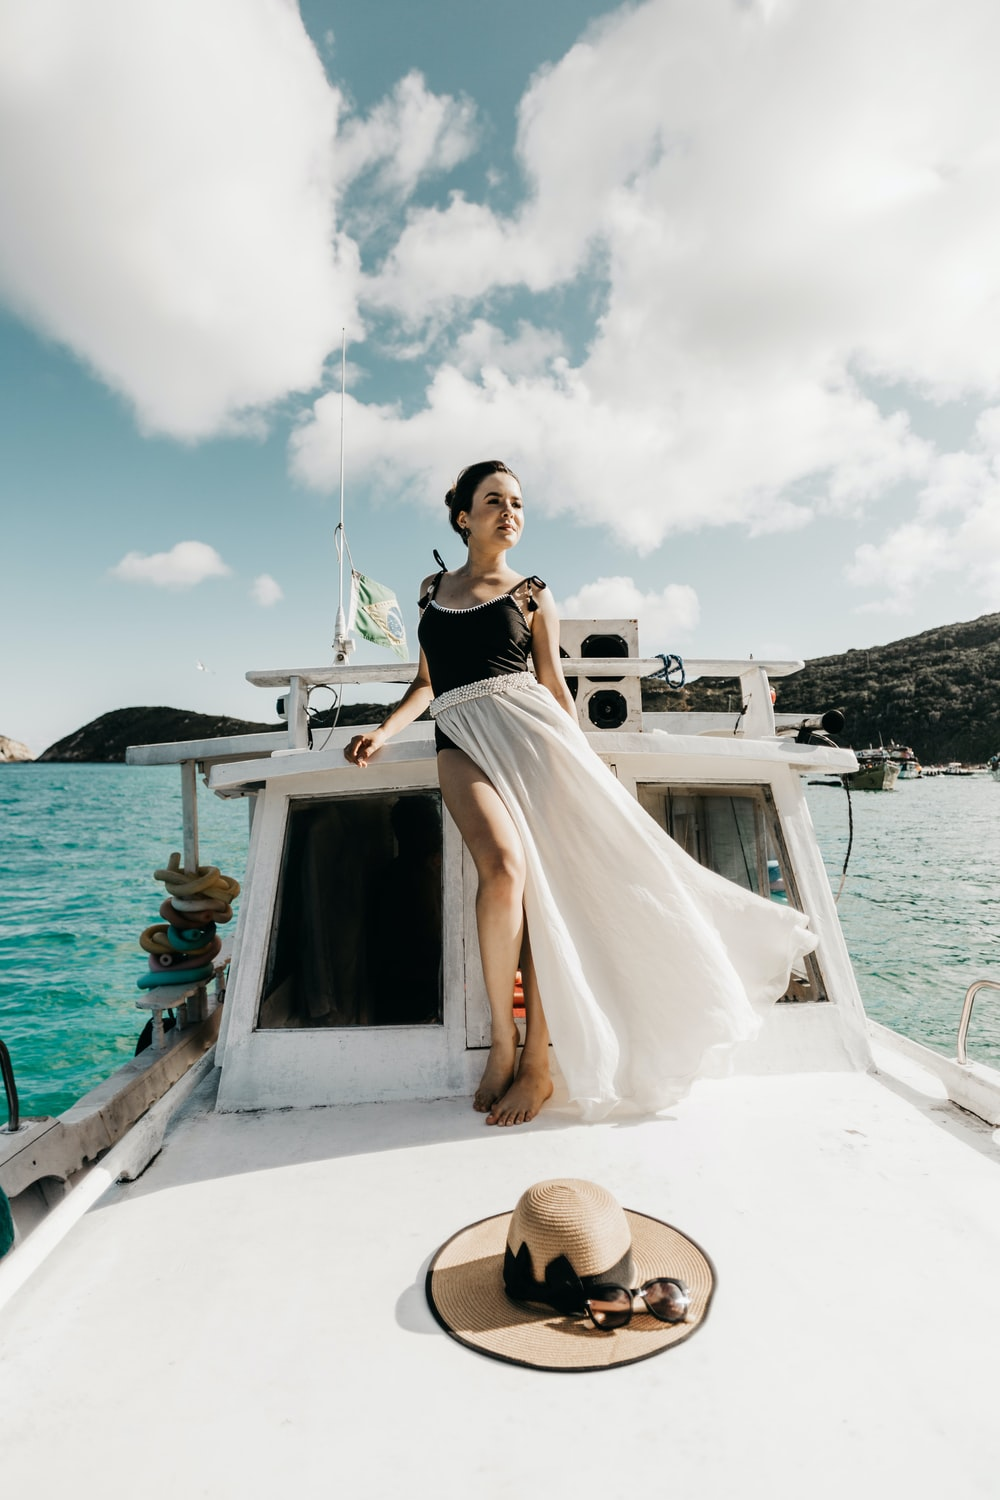 woman in white dress standing on white boat during daytime